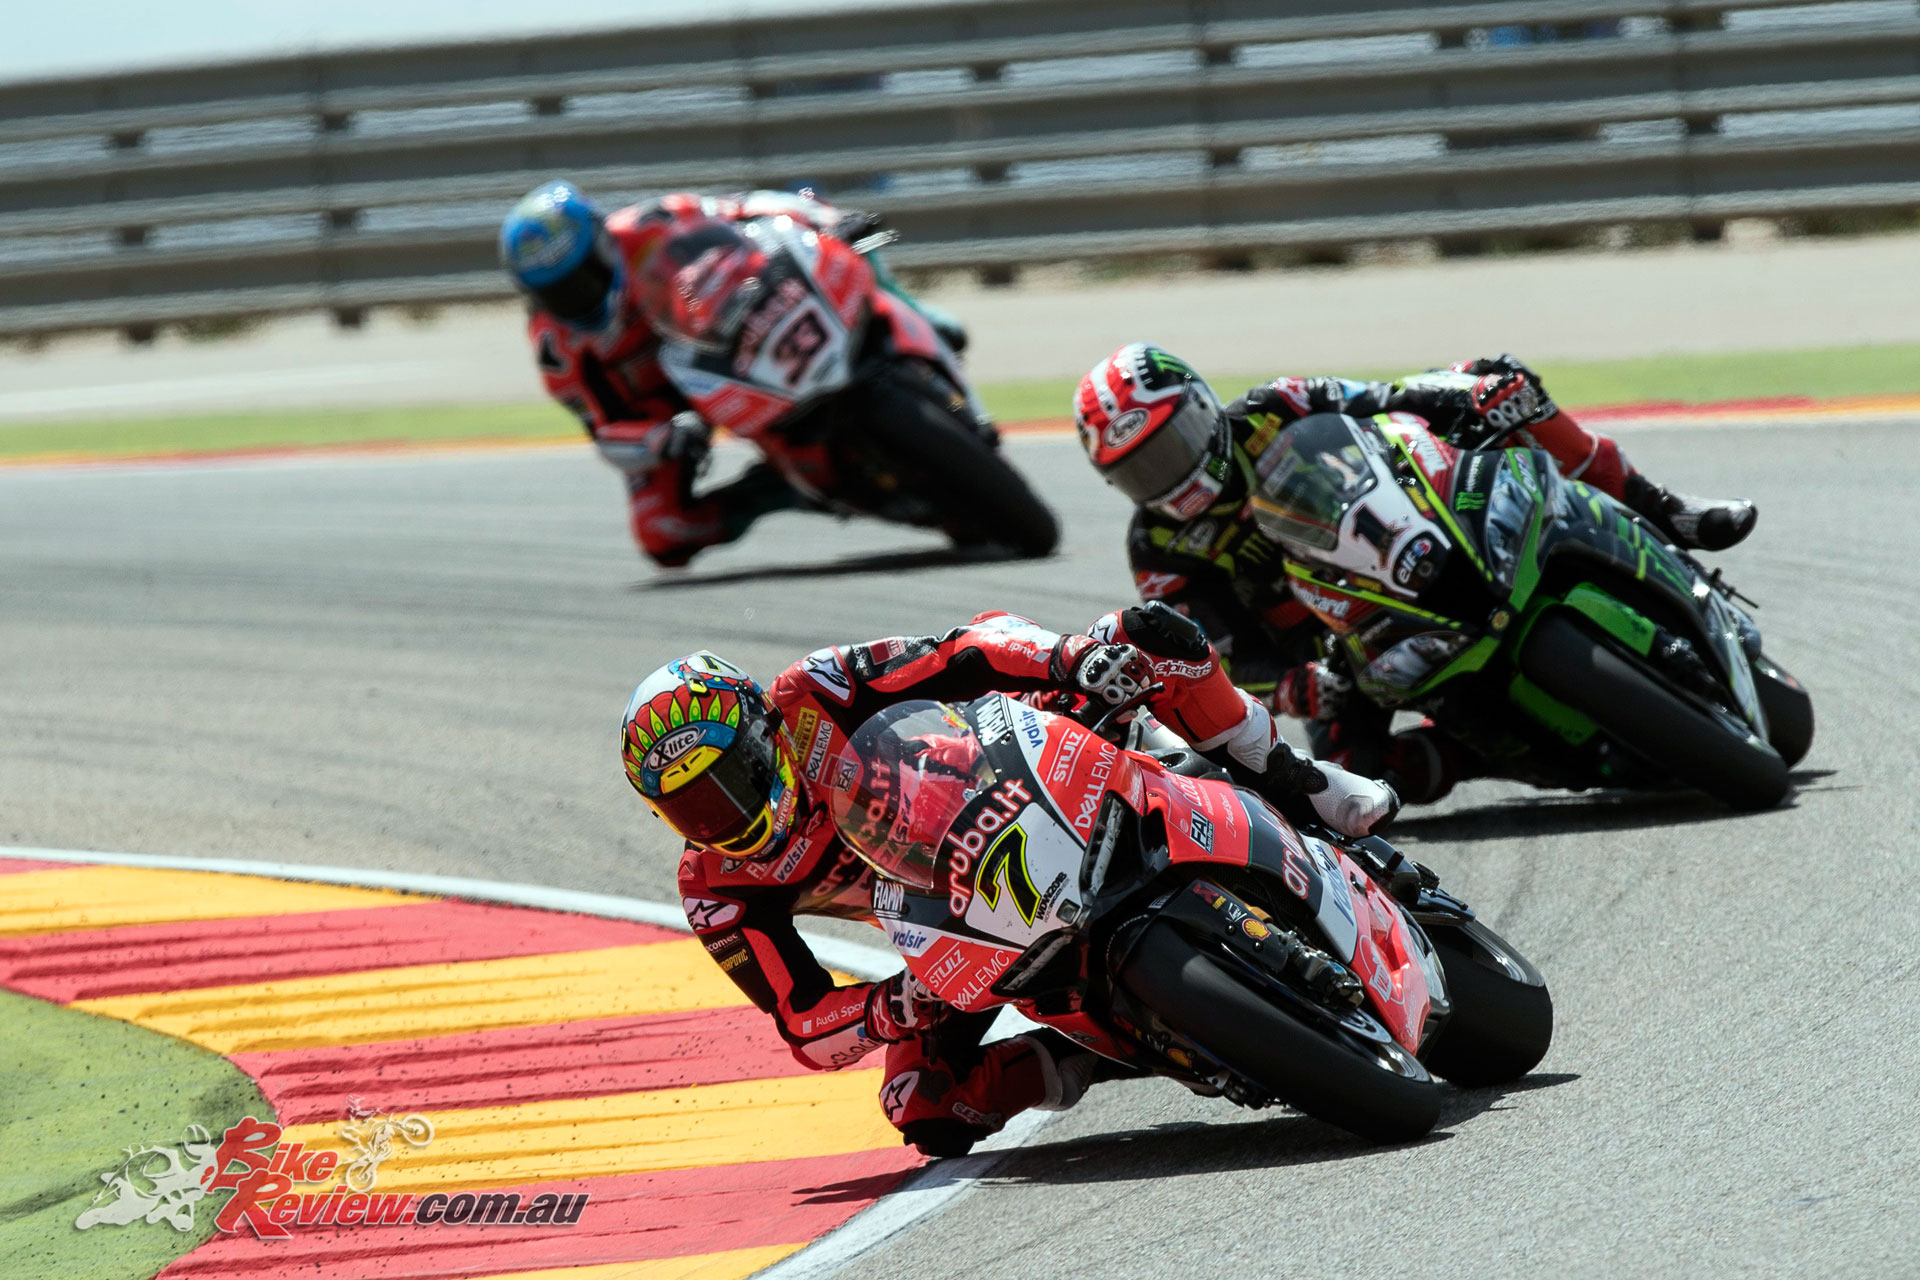 Davies leads Rea and Melandri - Image by Geebee Images